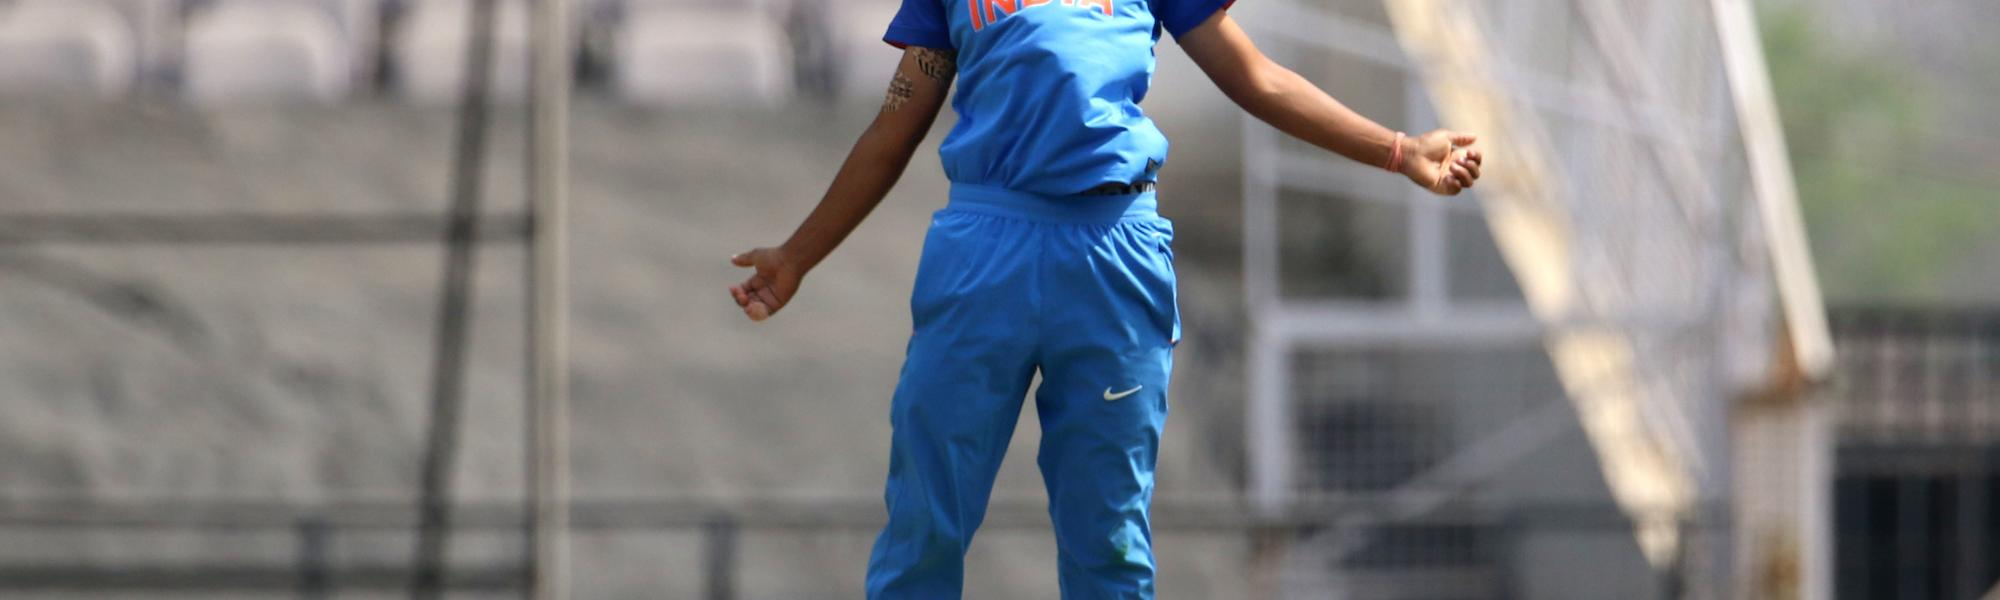 Poonam Yadav was India's star bowler, finishing with figures of 4/30